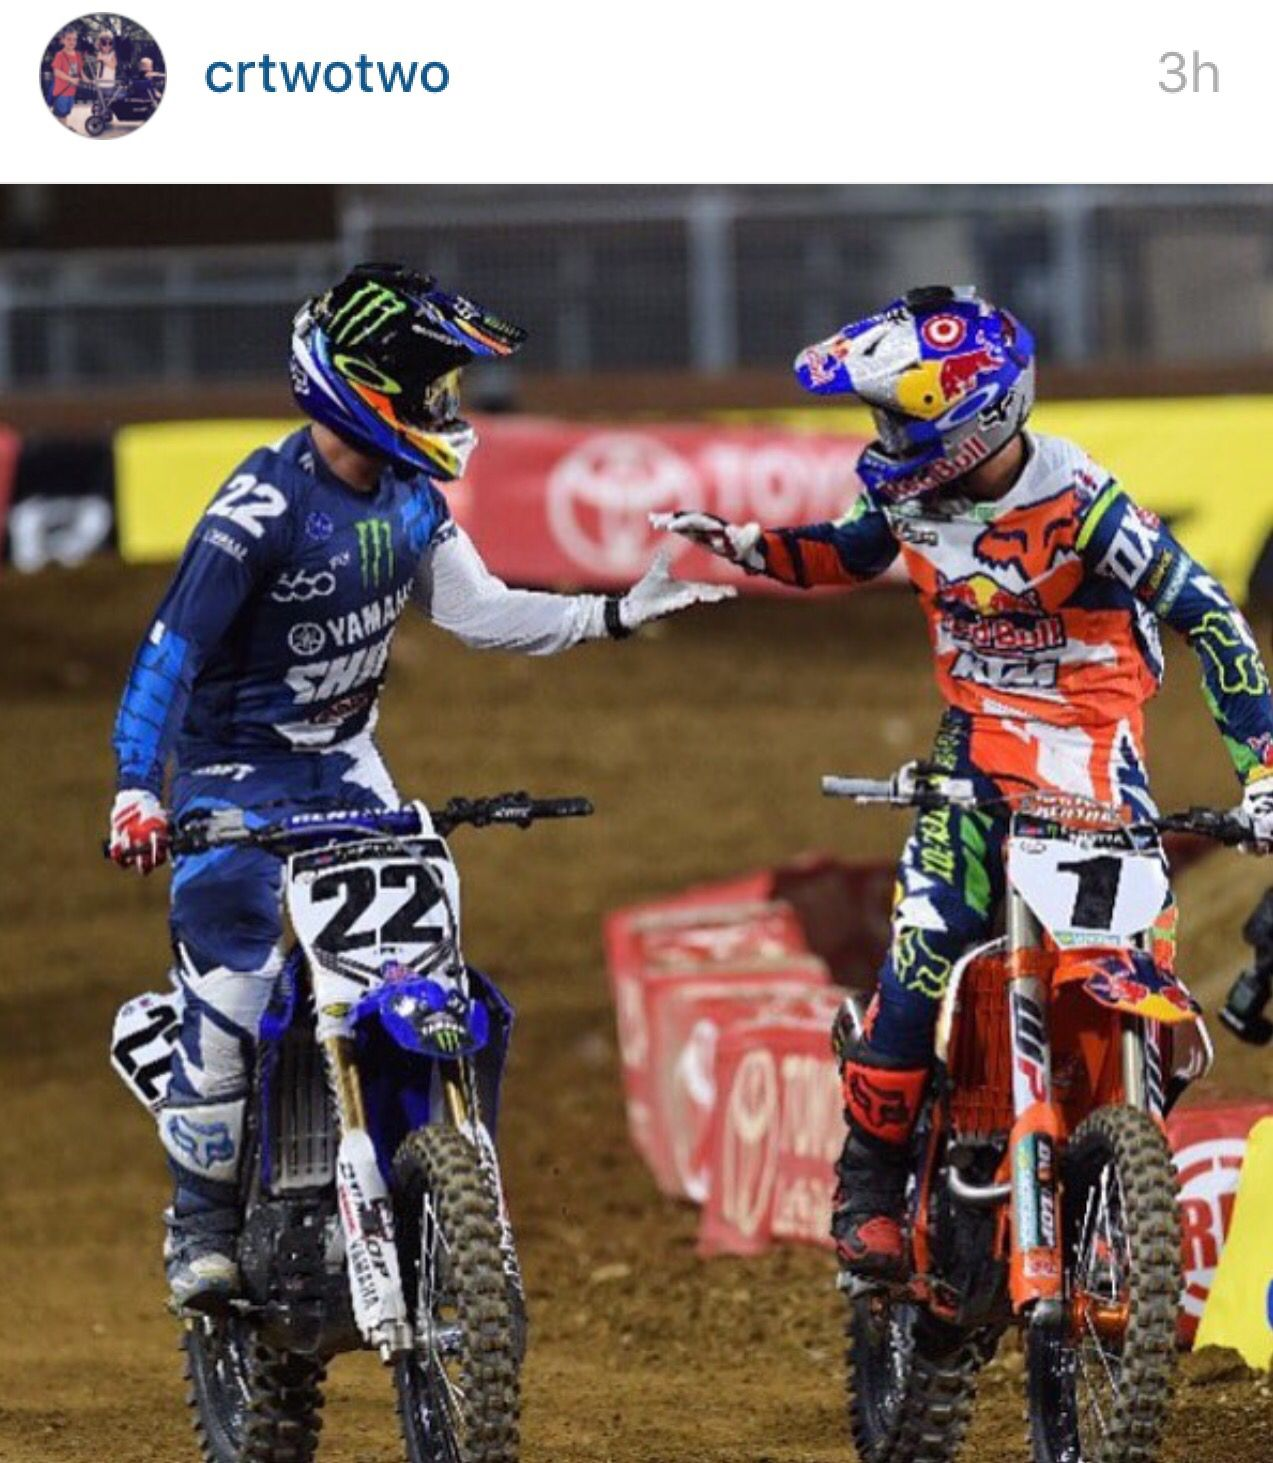 22 Chad Reed Congratulates 1 Ryan Dungey On His Win At San Diego